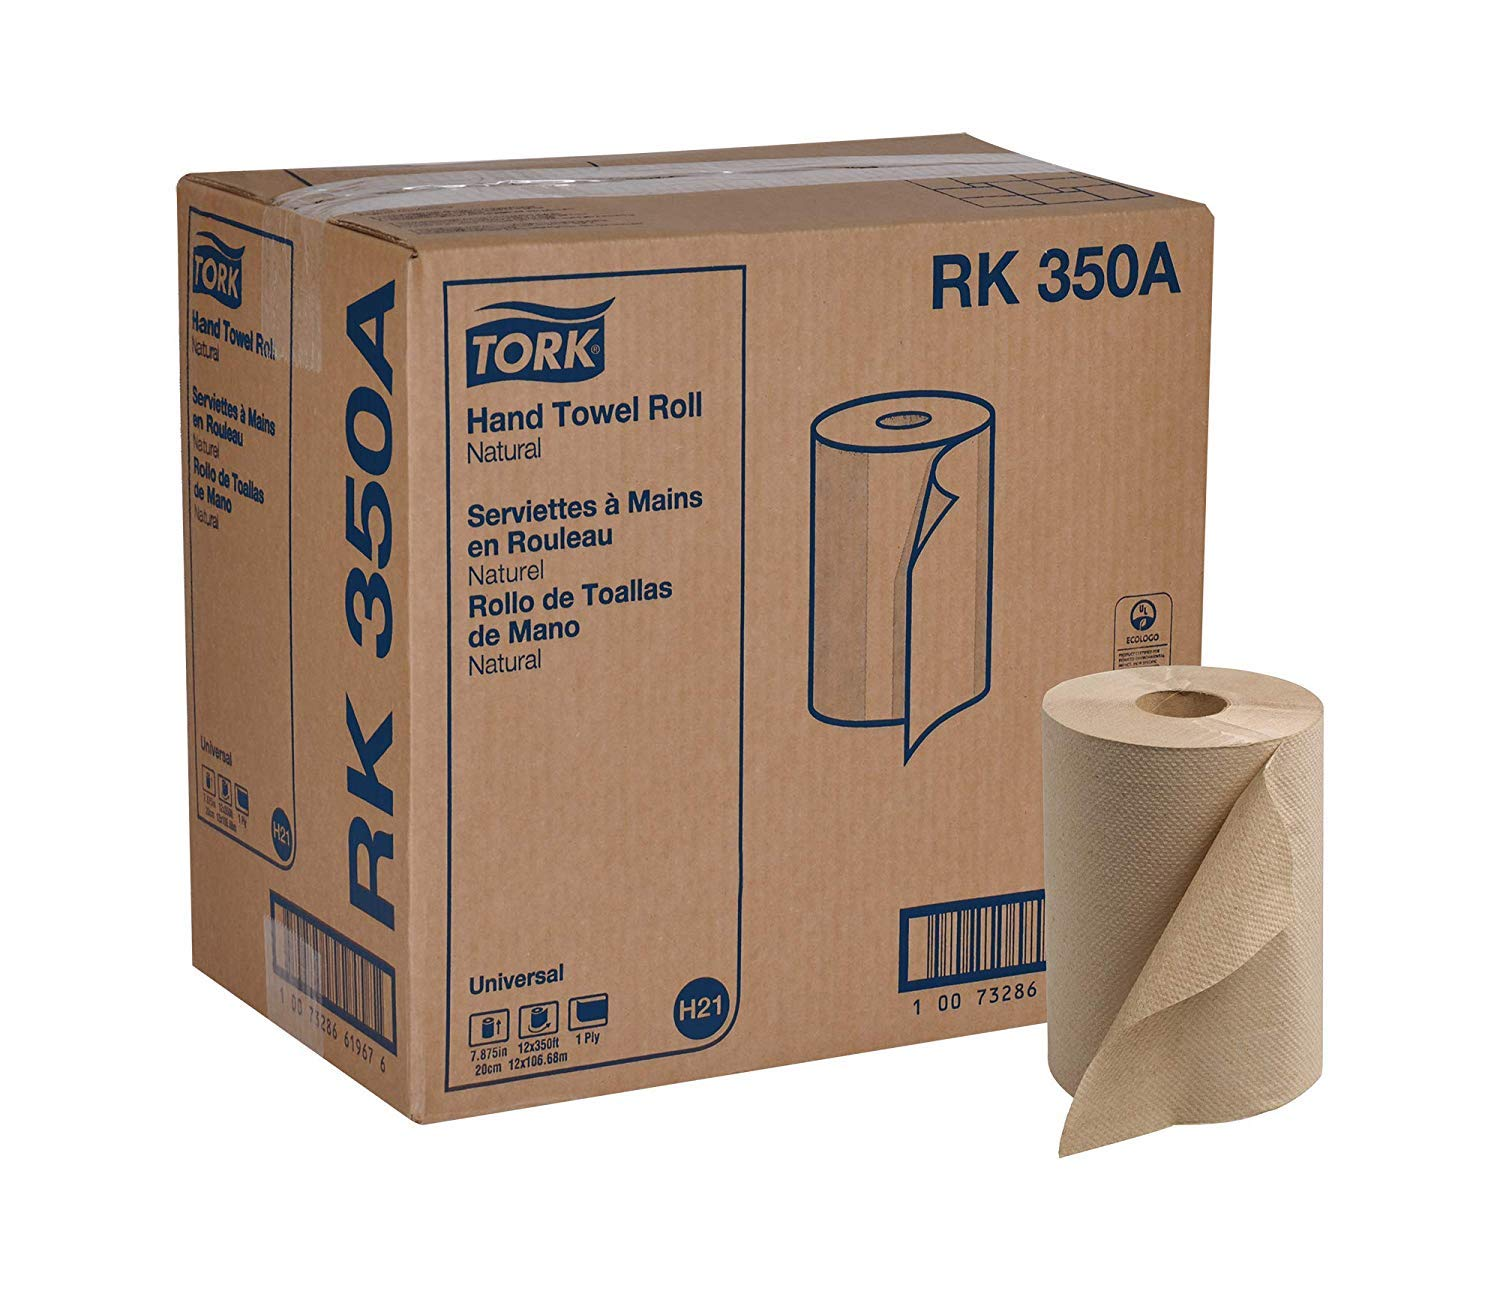 Tork Universal RK350A Hardwound Paper Roll Towel, 1-Ply, 7.87'' Width x 350' Length, Natural, Green Seal Certified (Case of 12 Rolls, 350 per Roll, 4,200 Feet) (2 Ply)